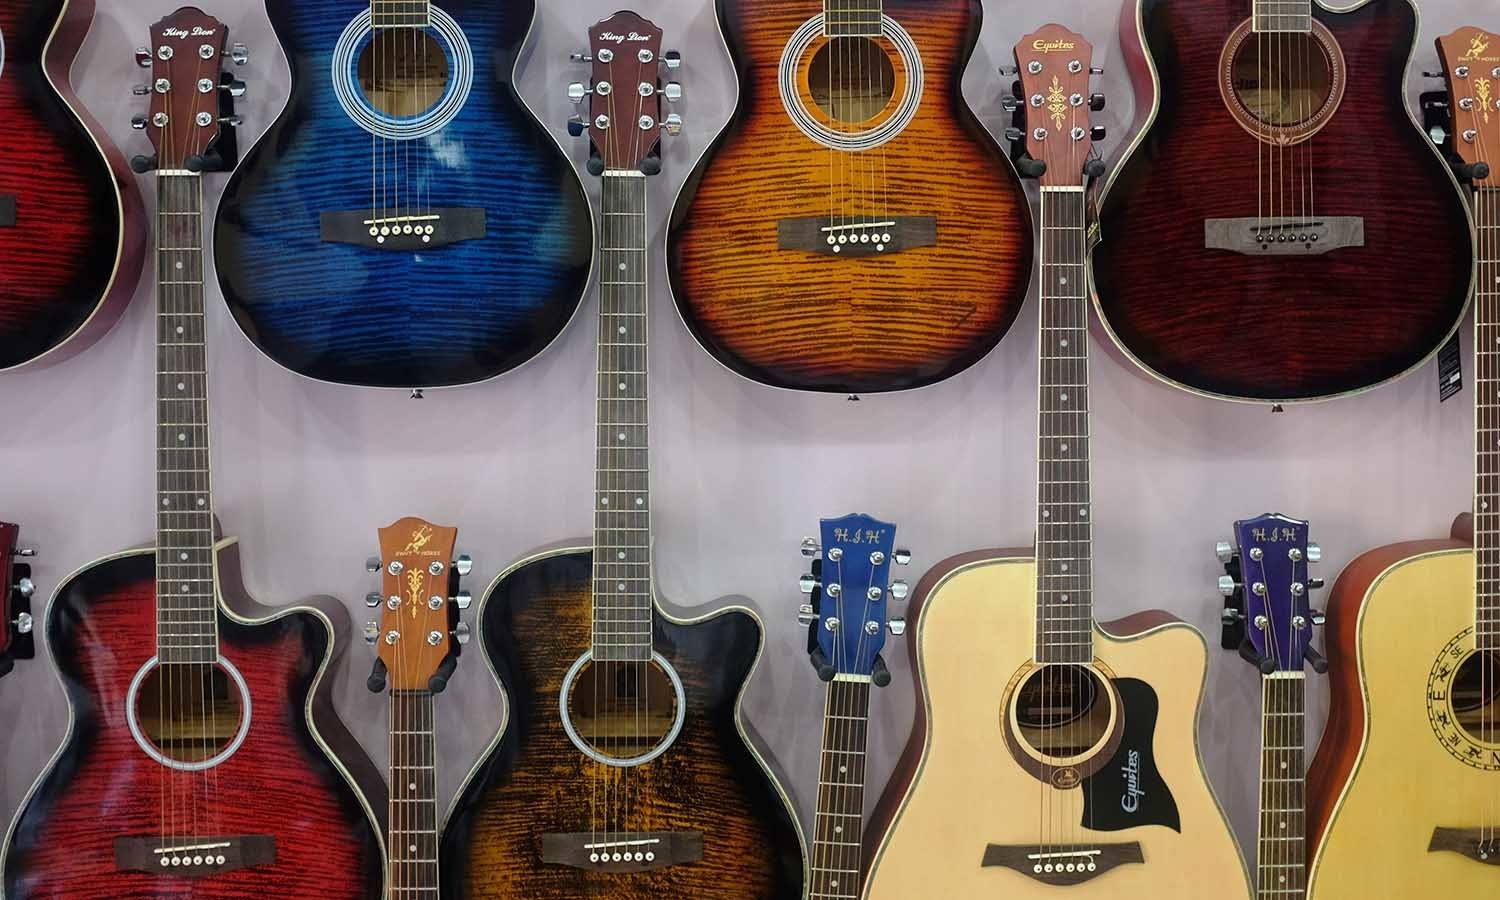 The Beatles Centre is one of the largest dealer of guitars in the country.